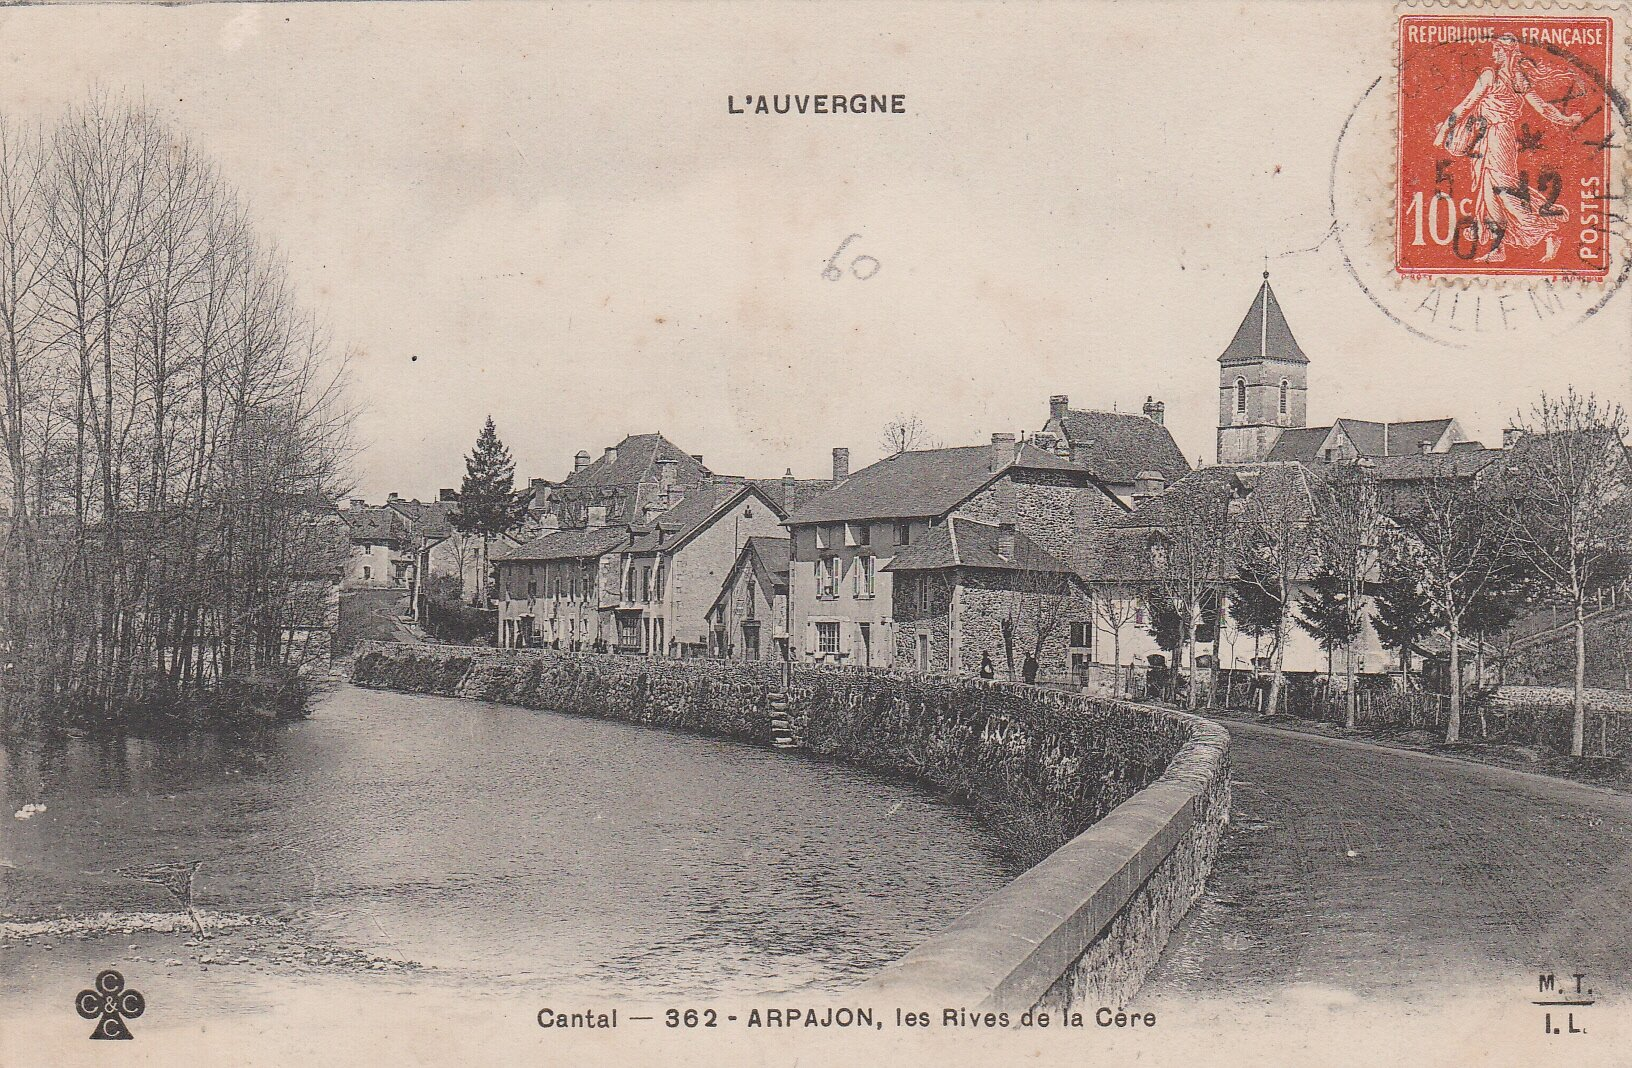 Cantal-362 - ARPAJON, les Rives de la Cère 1907